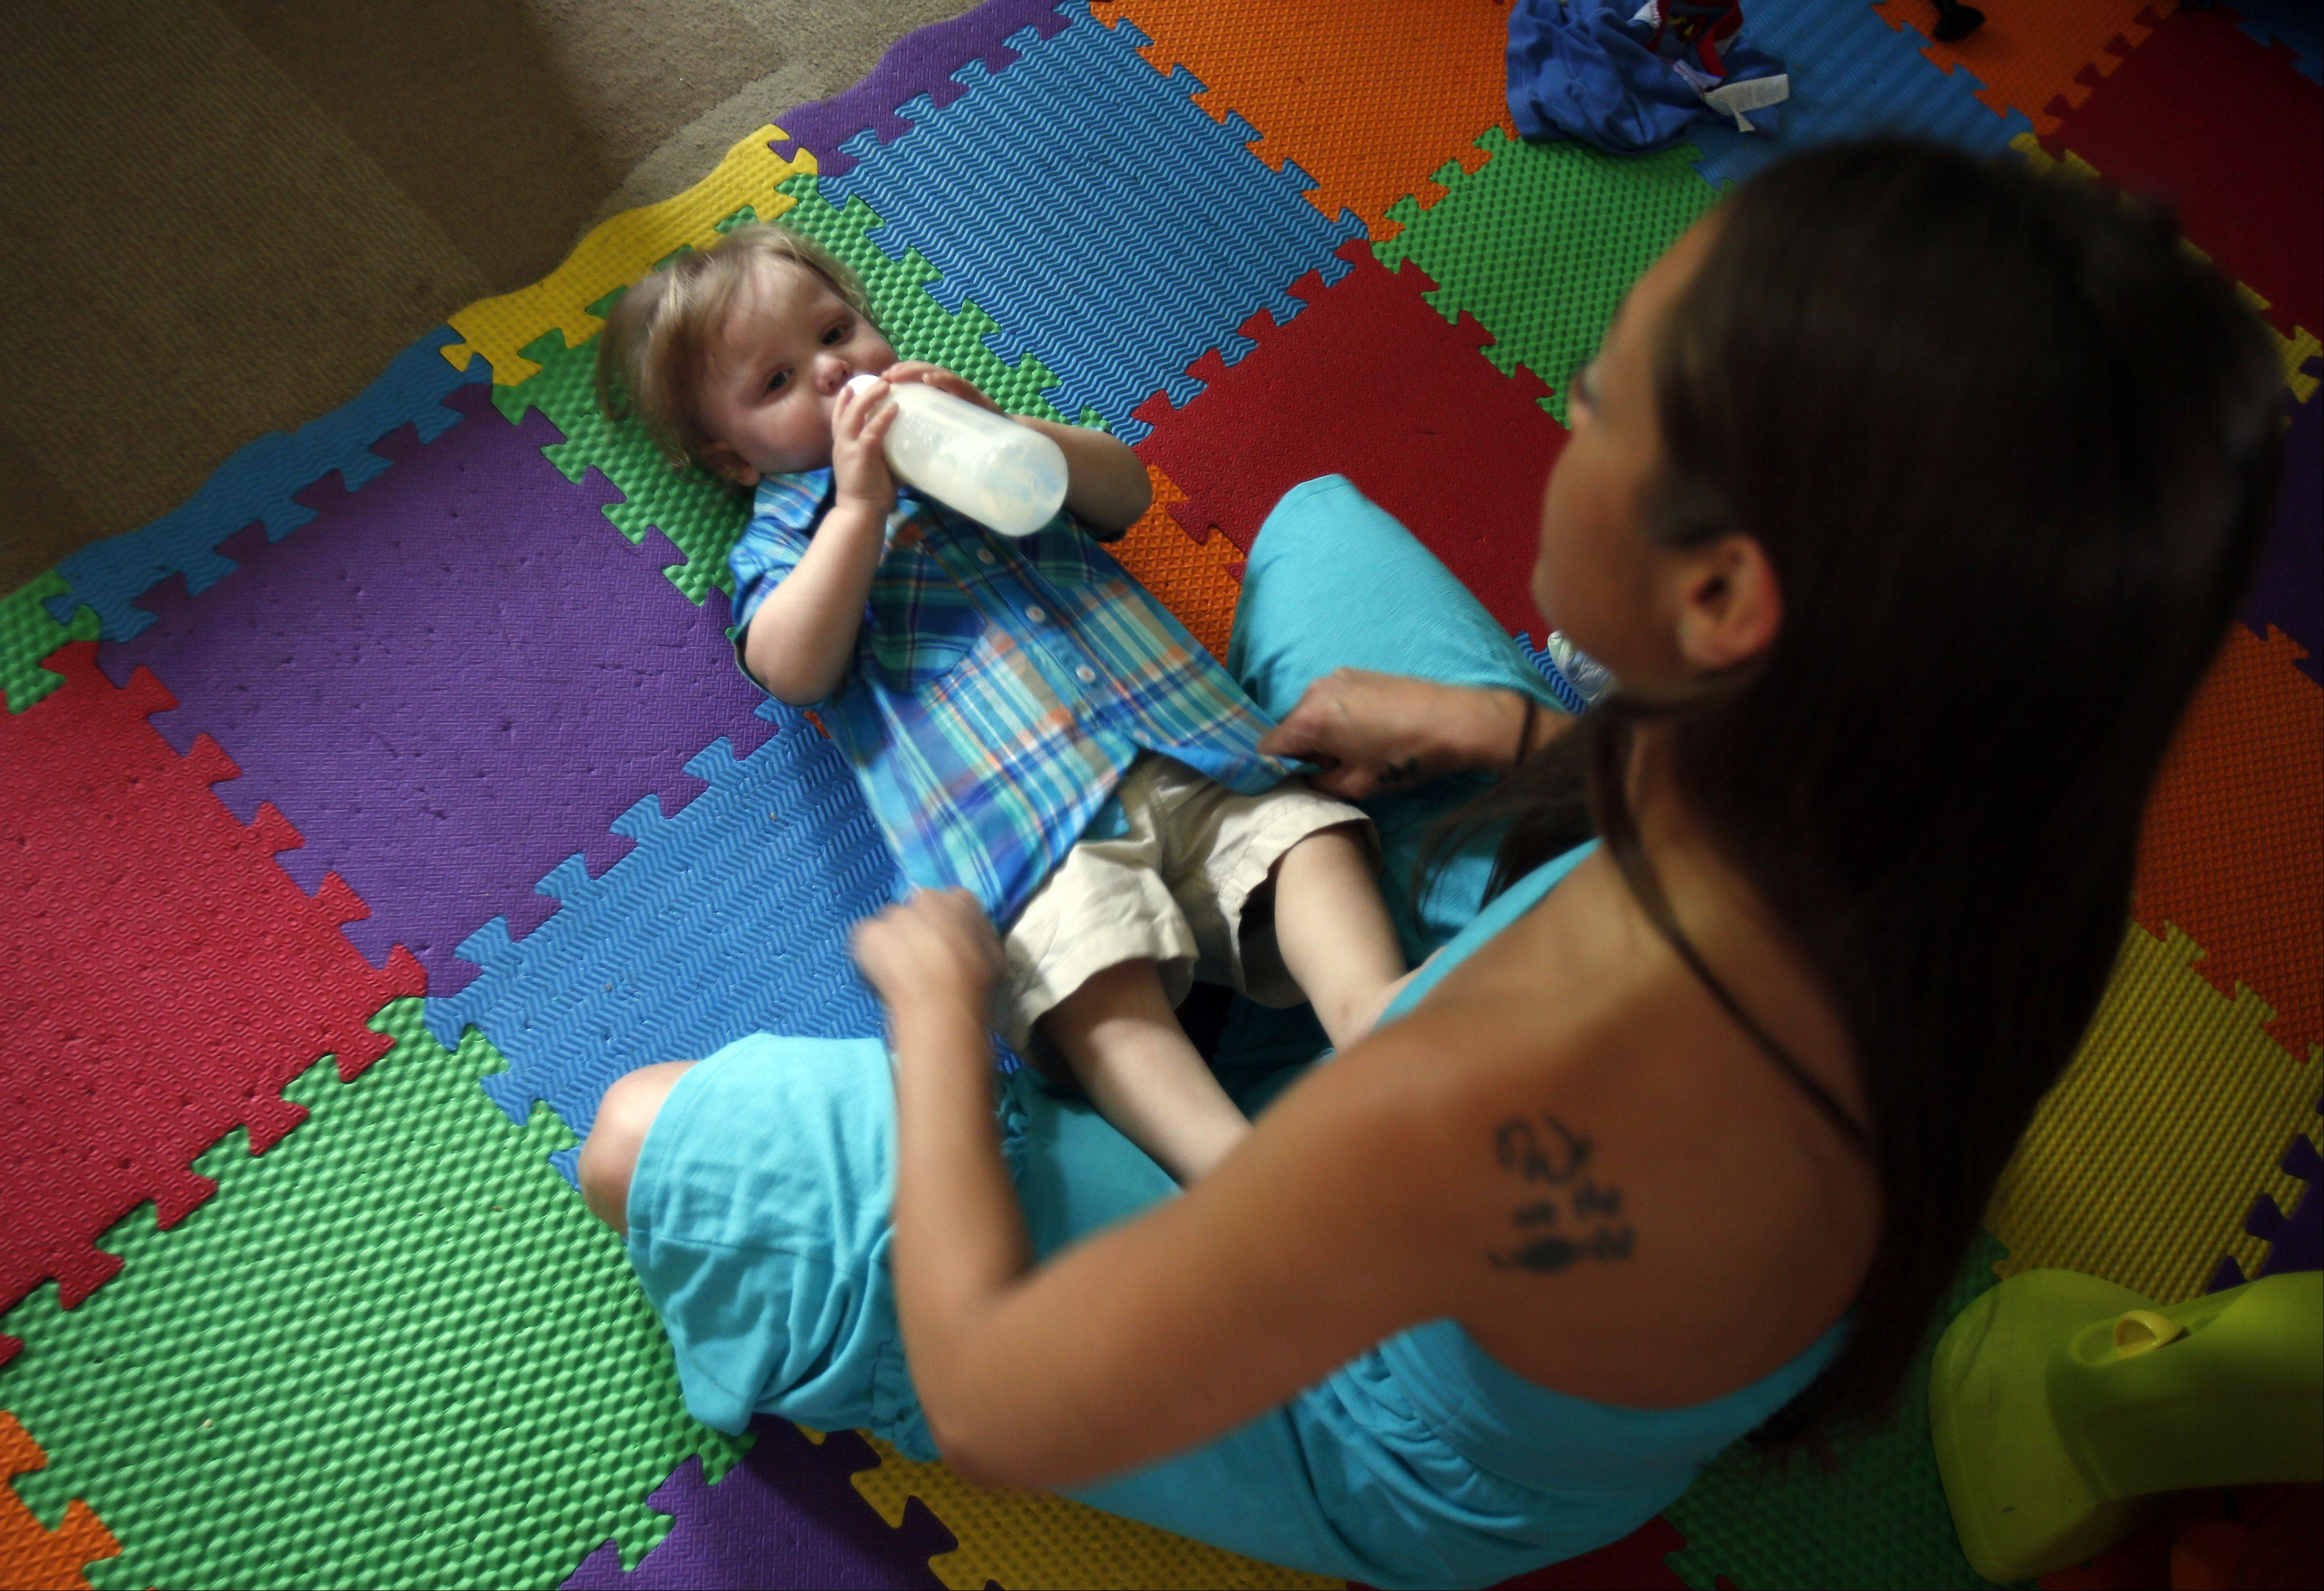 Hollie Redinger of Elgin gets her son, Mason, 18 months, ready. Redinger is part of a group of parents that have decided to forgo vaccinations.